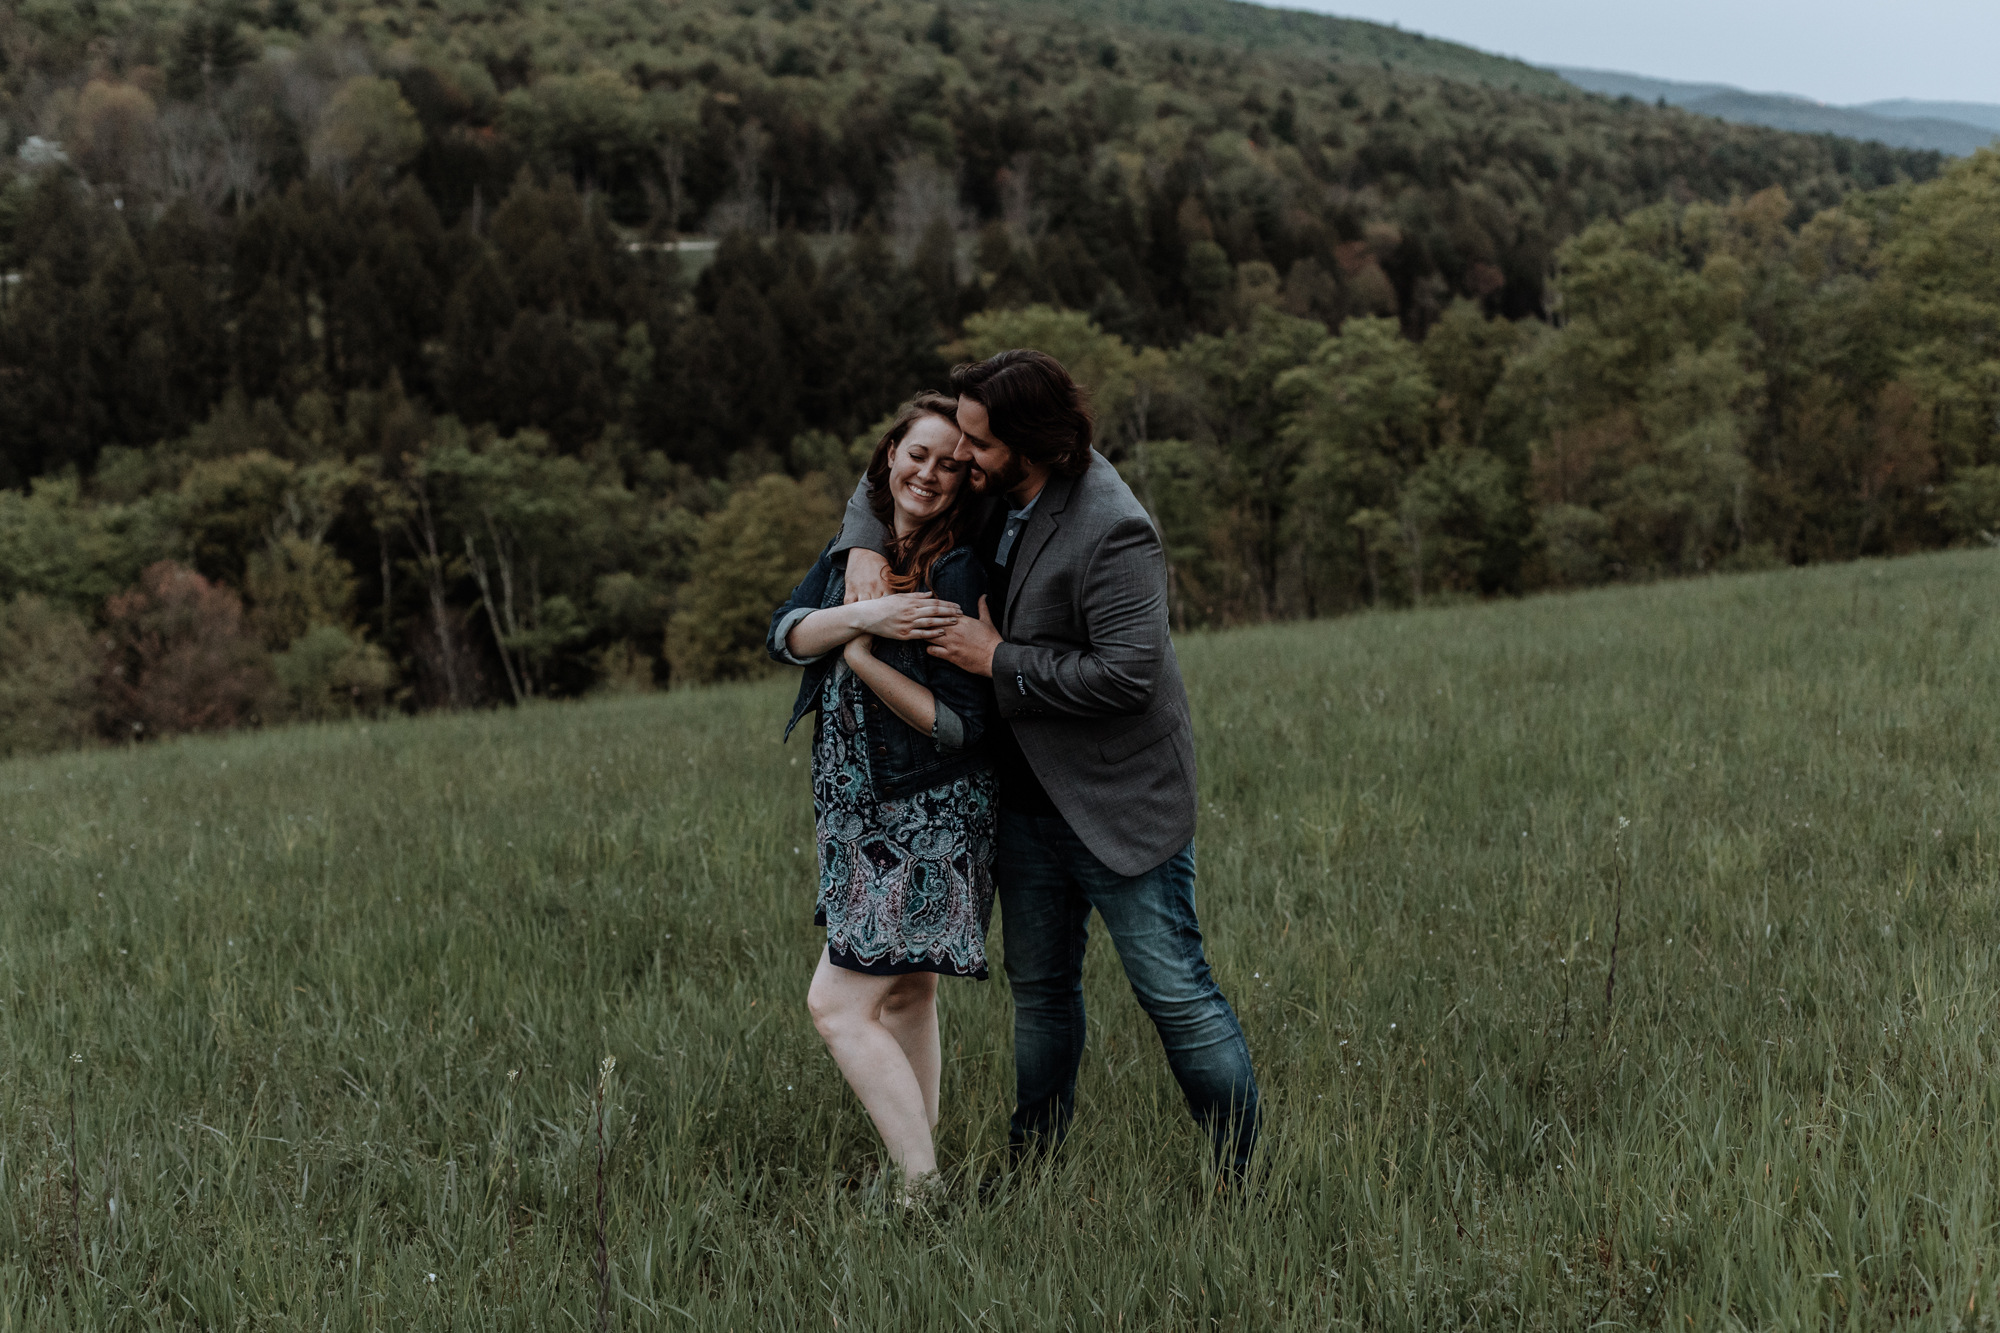 lehigh-valley-blue-hour-dusk-engagement-session-photography